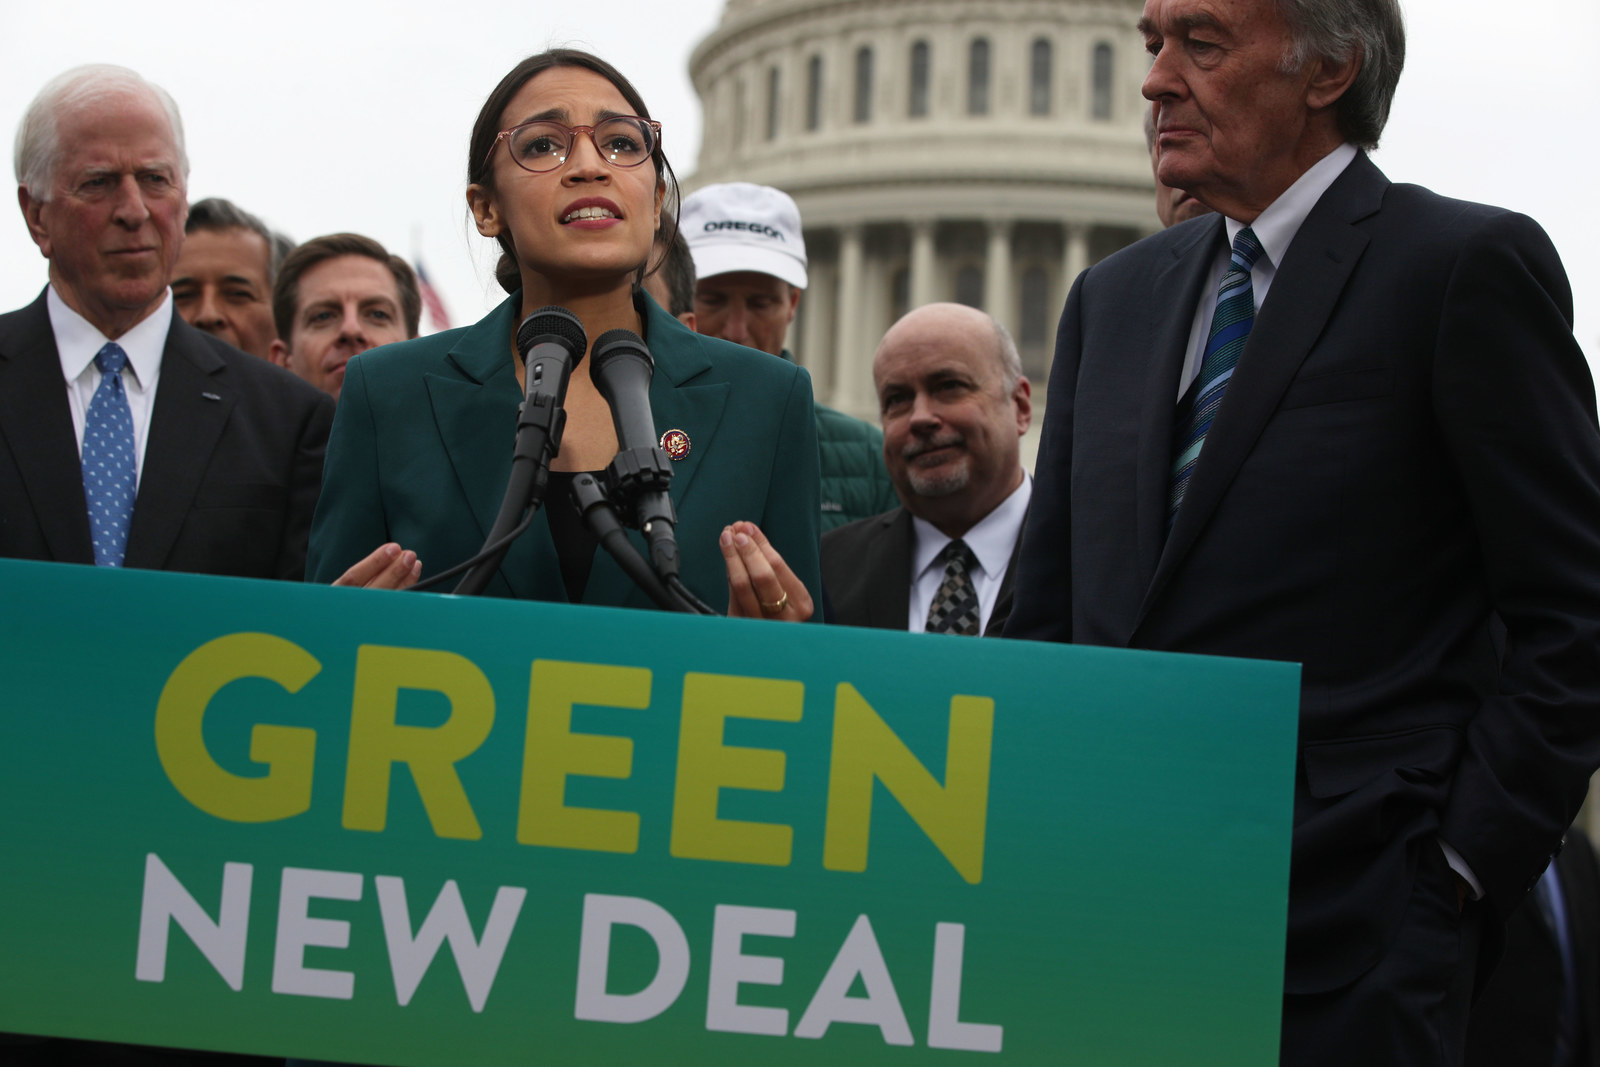 Rep. Alexandria Ocasio-Cortez (D-NY) and Sen. Ed Markey (D-MA) at a press conference about the Green New Deal